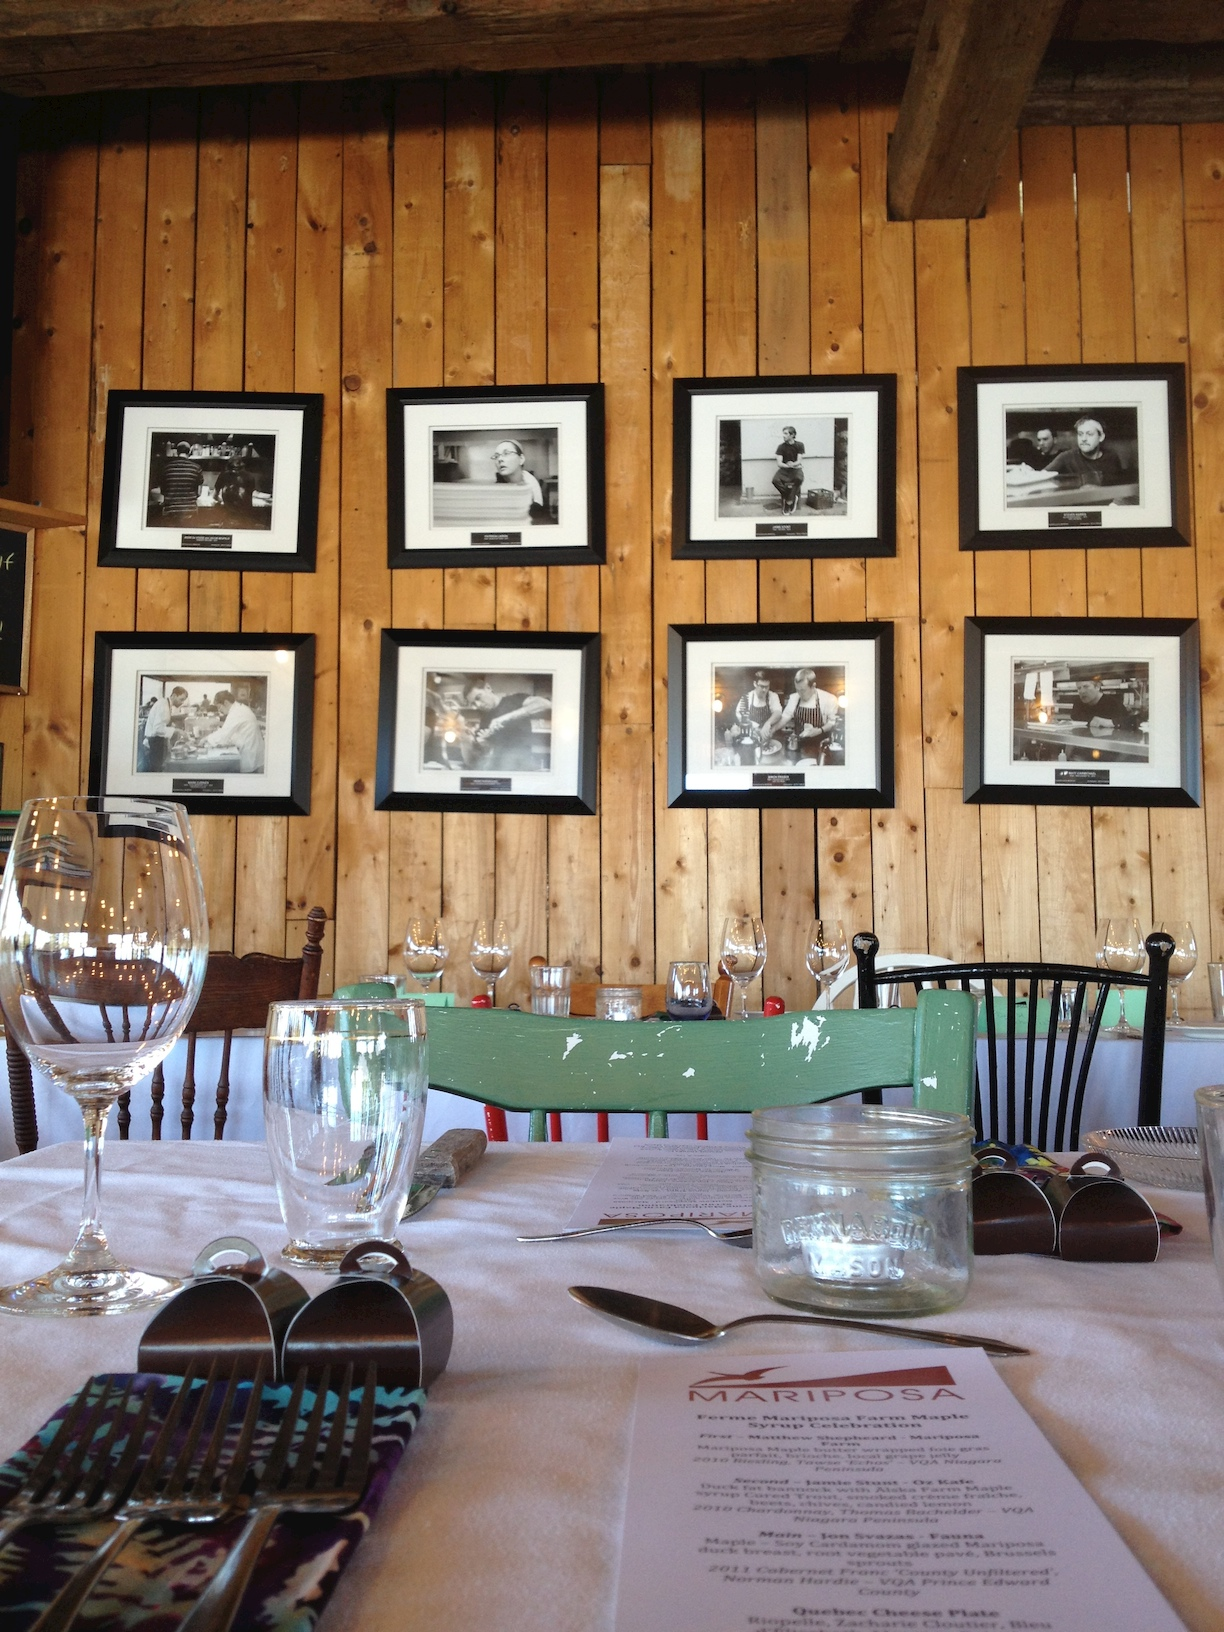 The country dining room and chef wall of fame at Mariposa Farm.